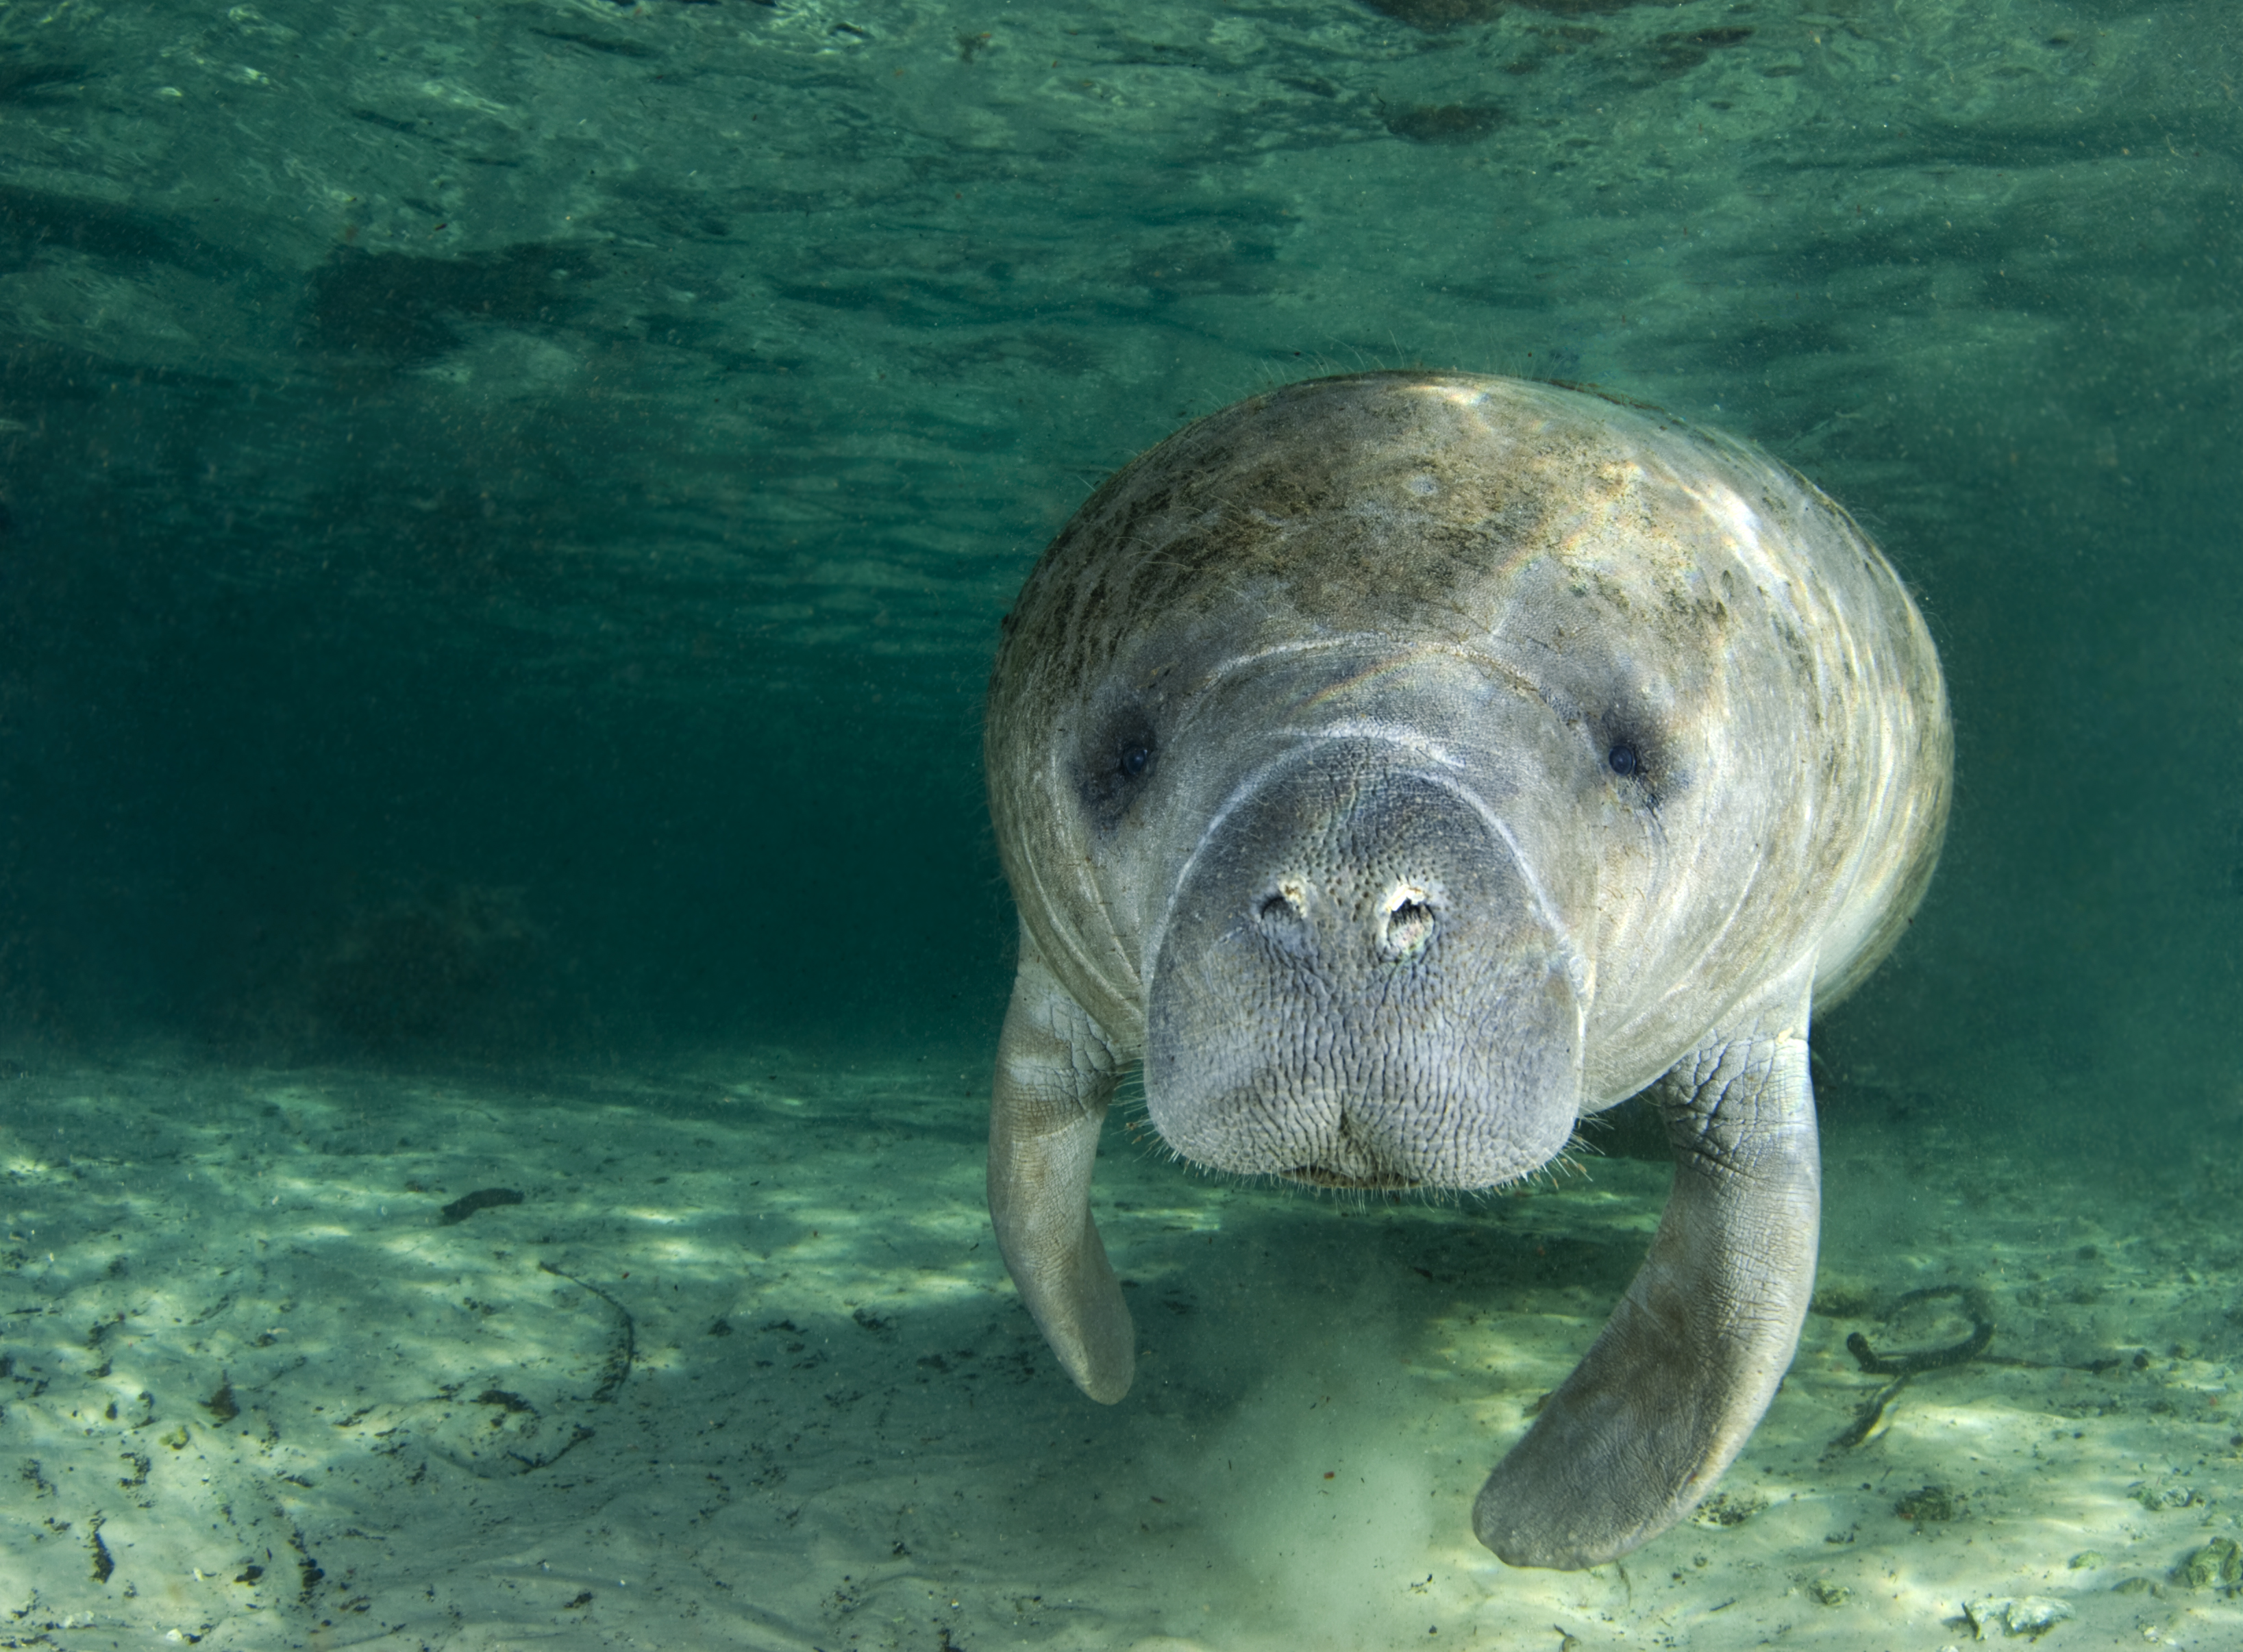 A manatee swims along underwater in the springs of Crystal River, Florida.